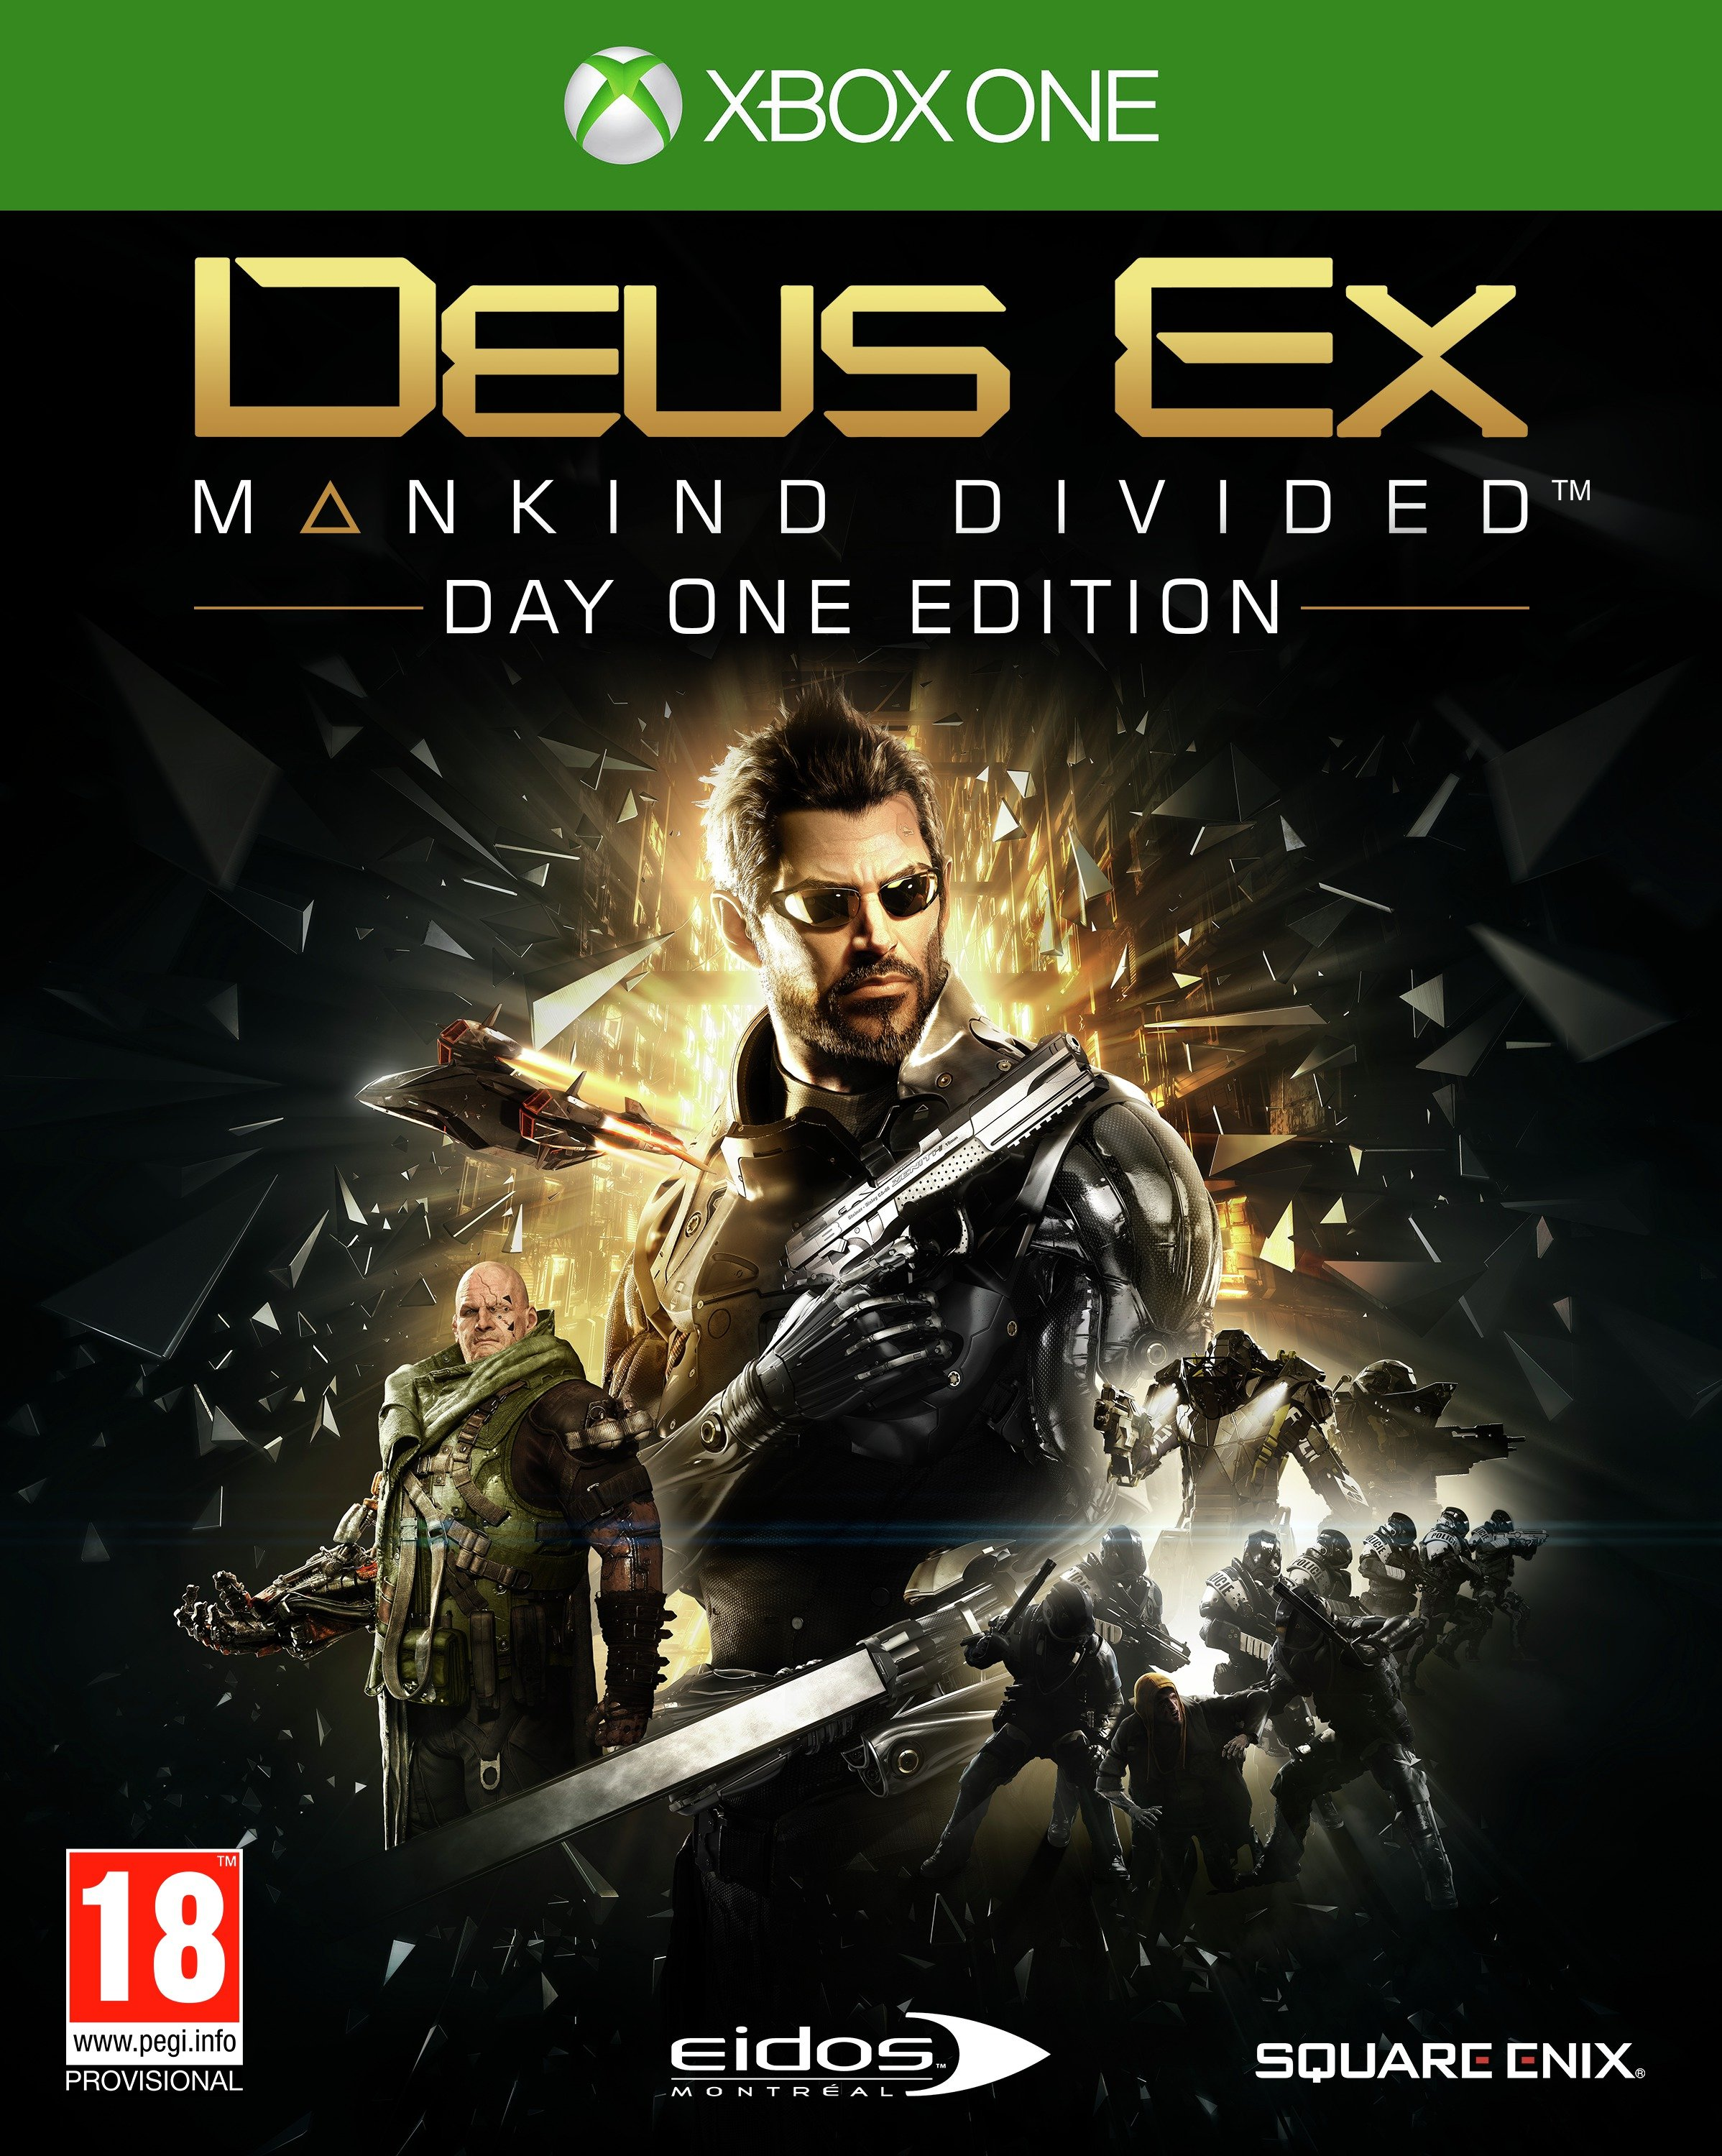 Image of Deus Ex - Mankind Divided - Xbox - One Game.